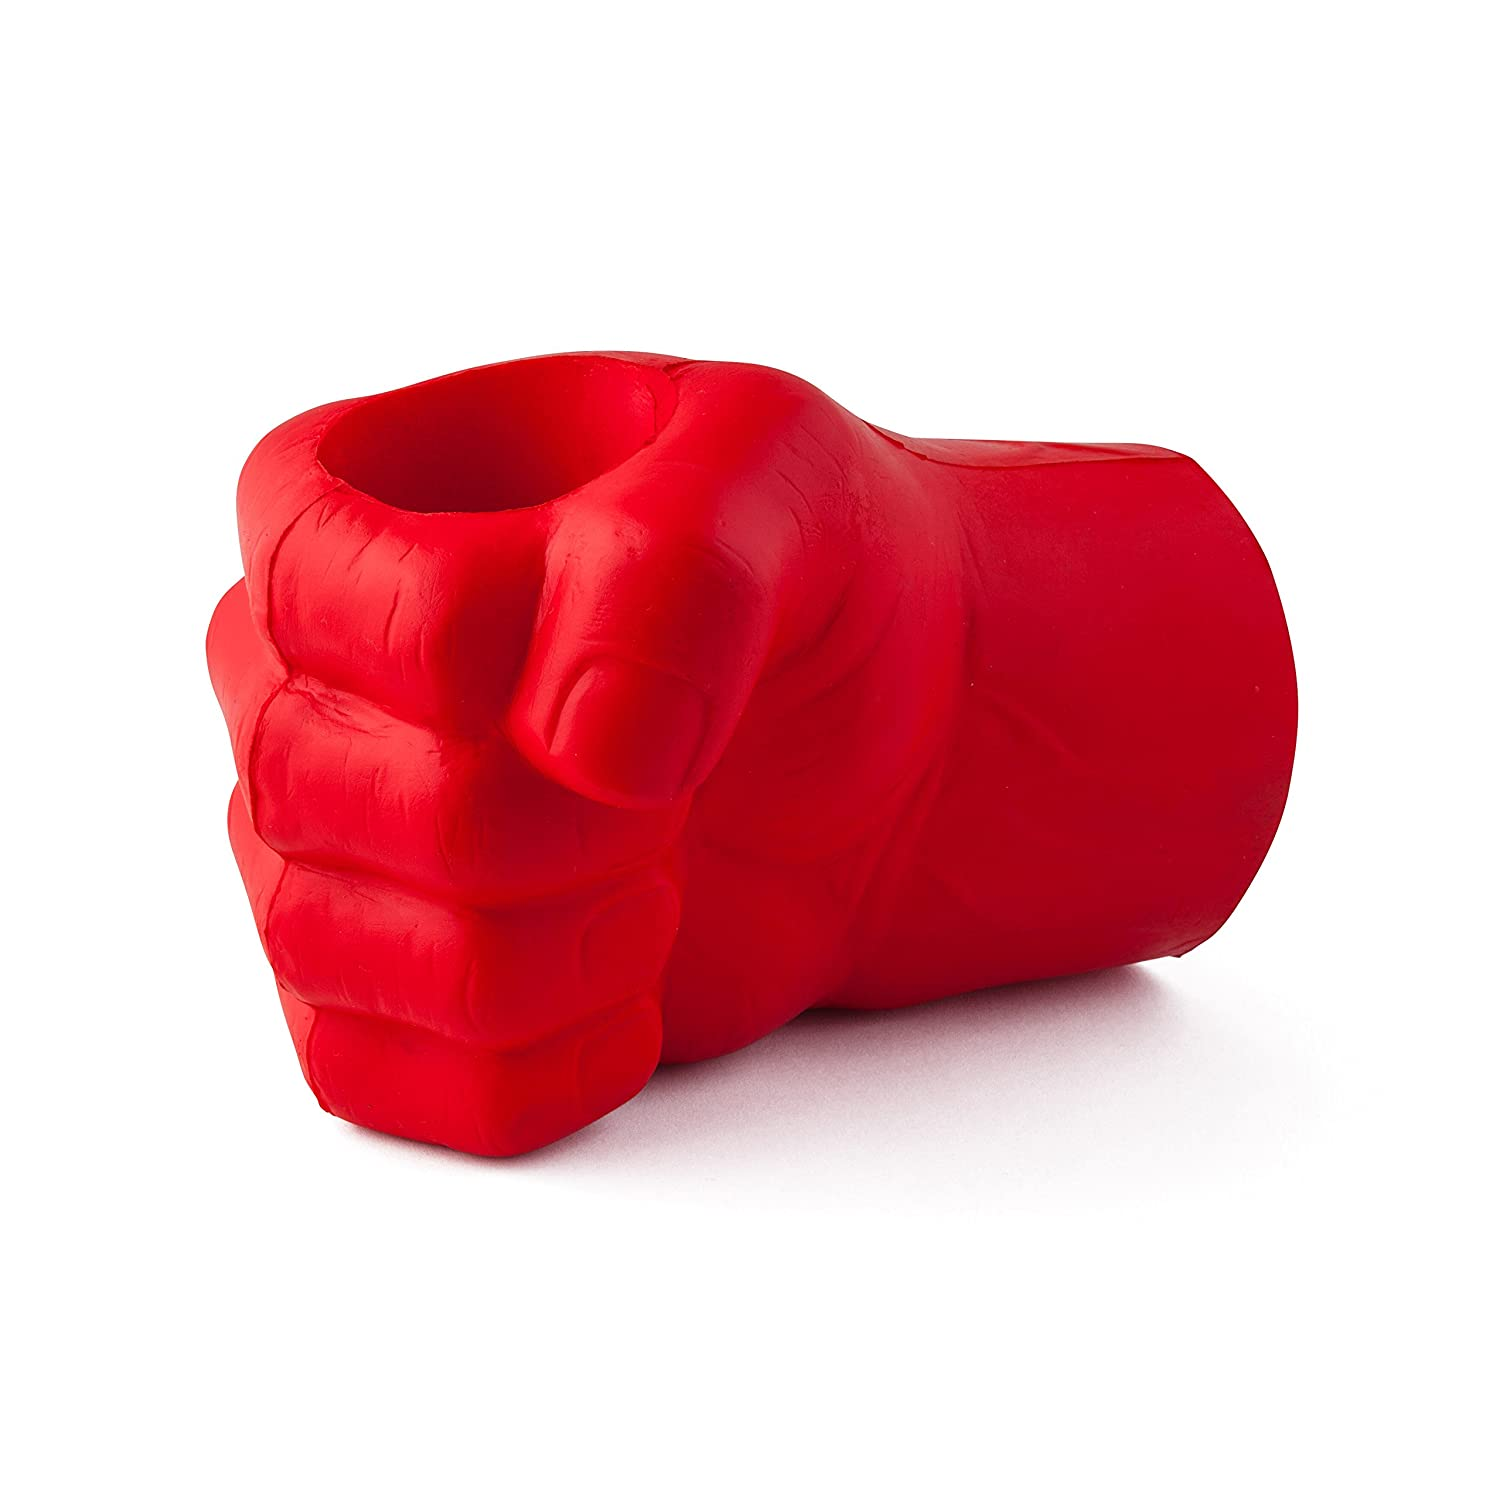 BigMouth Inc The Beast Giant Fist Shaped Drink Kooler, Holds Can or Bottle, Keeps Drink Cold, Easy to Clean Outrageous Ventures BM1538